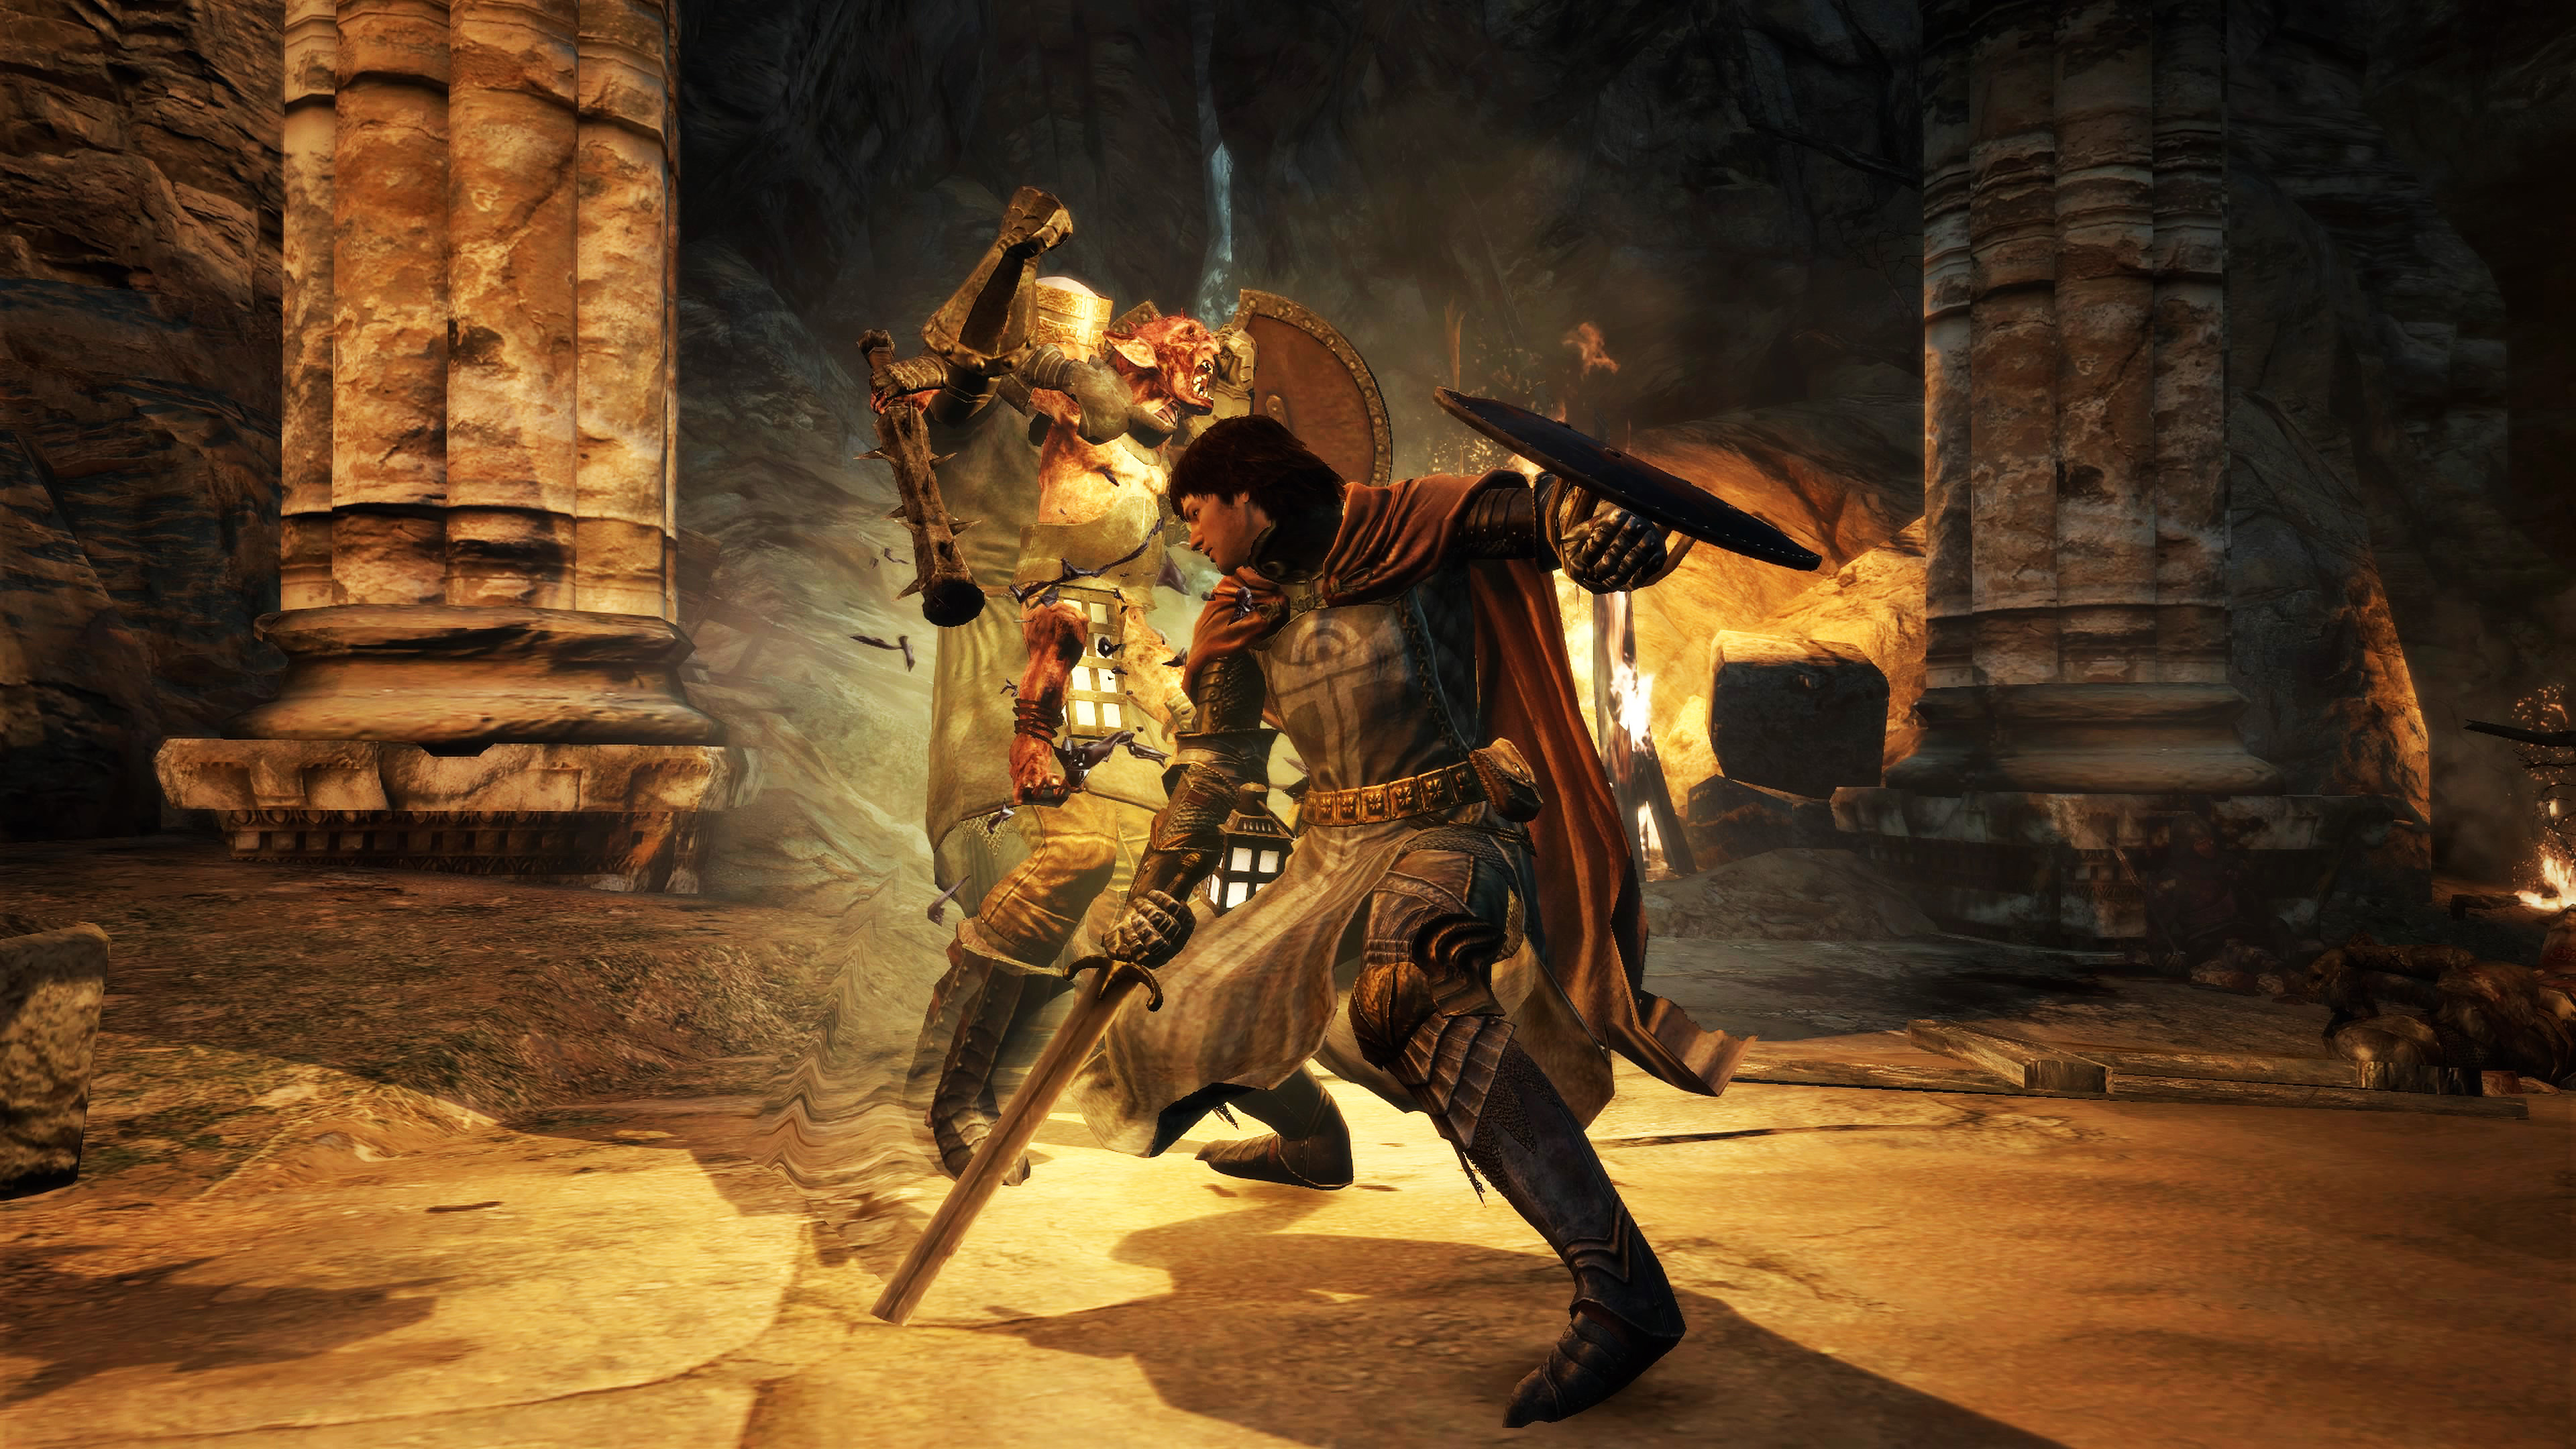 Dragon S Dogma: Dragon's Dogma Is Amazing, So Get Off Your Ass And Play